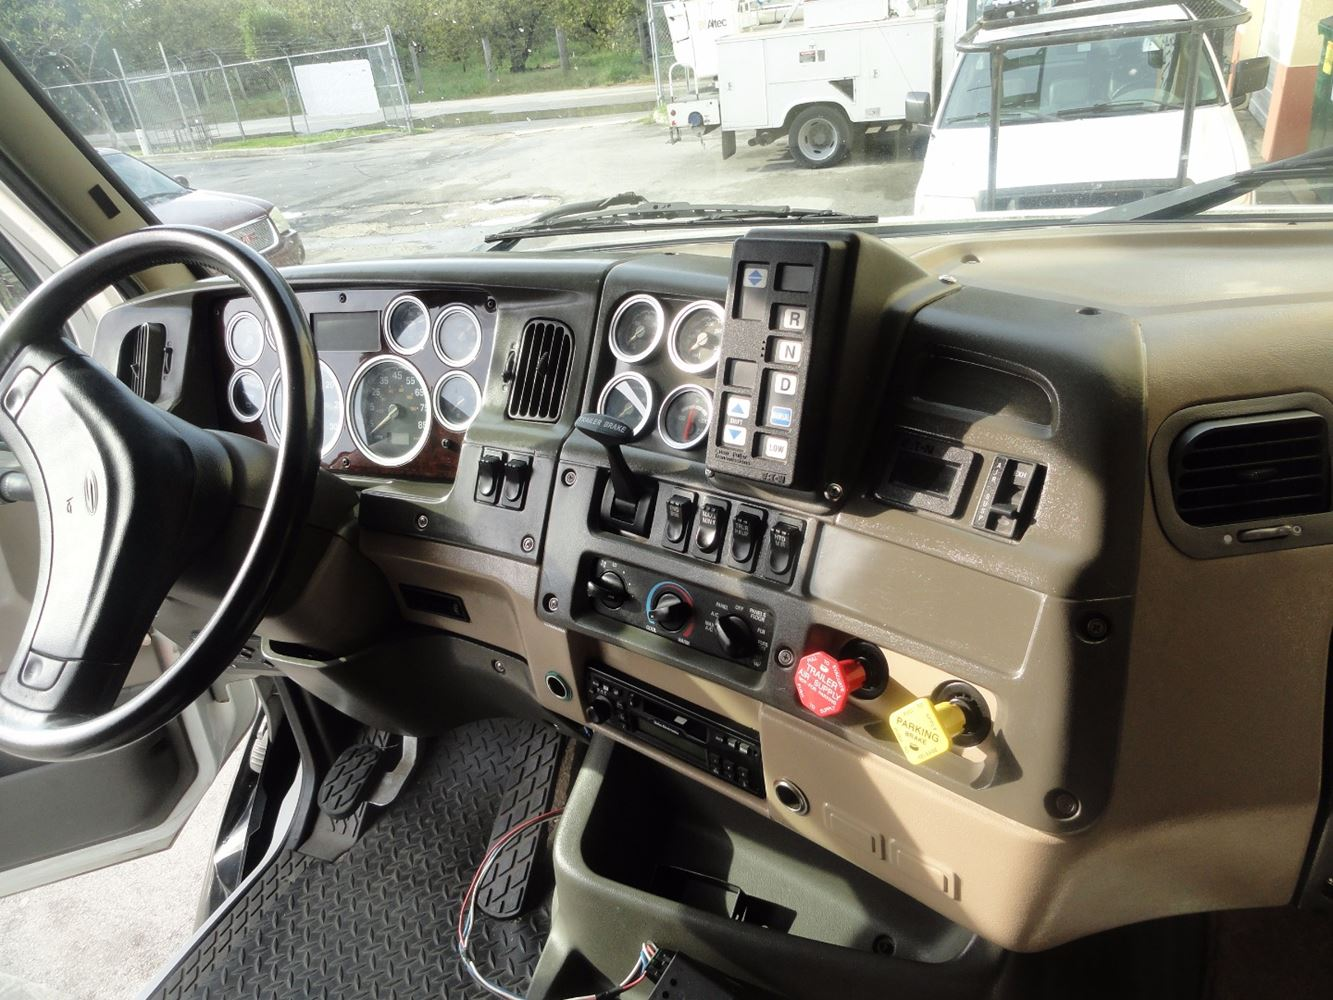 Cj5 Jeep Wiring Harnesses further 81548327 in addition 81087539 additionally 5079 further 1351117 73 79 Parts. on truck wiring harnesses